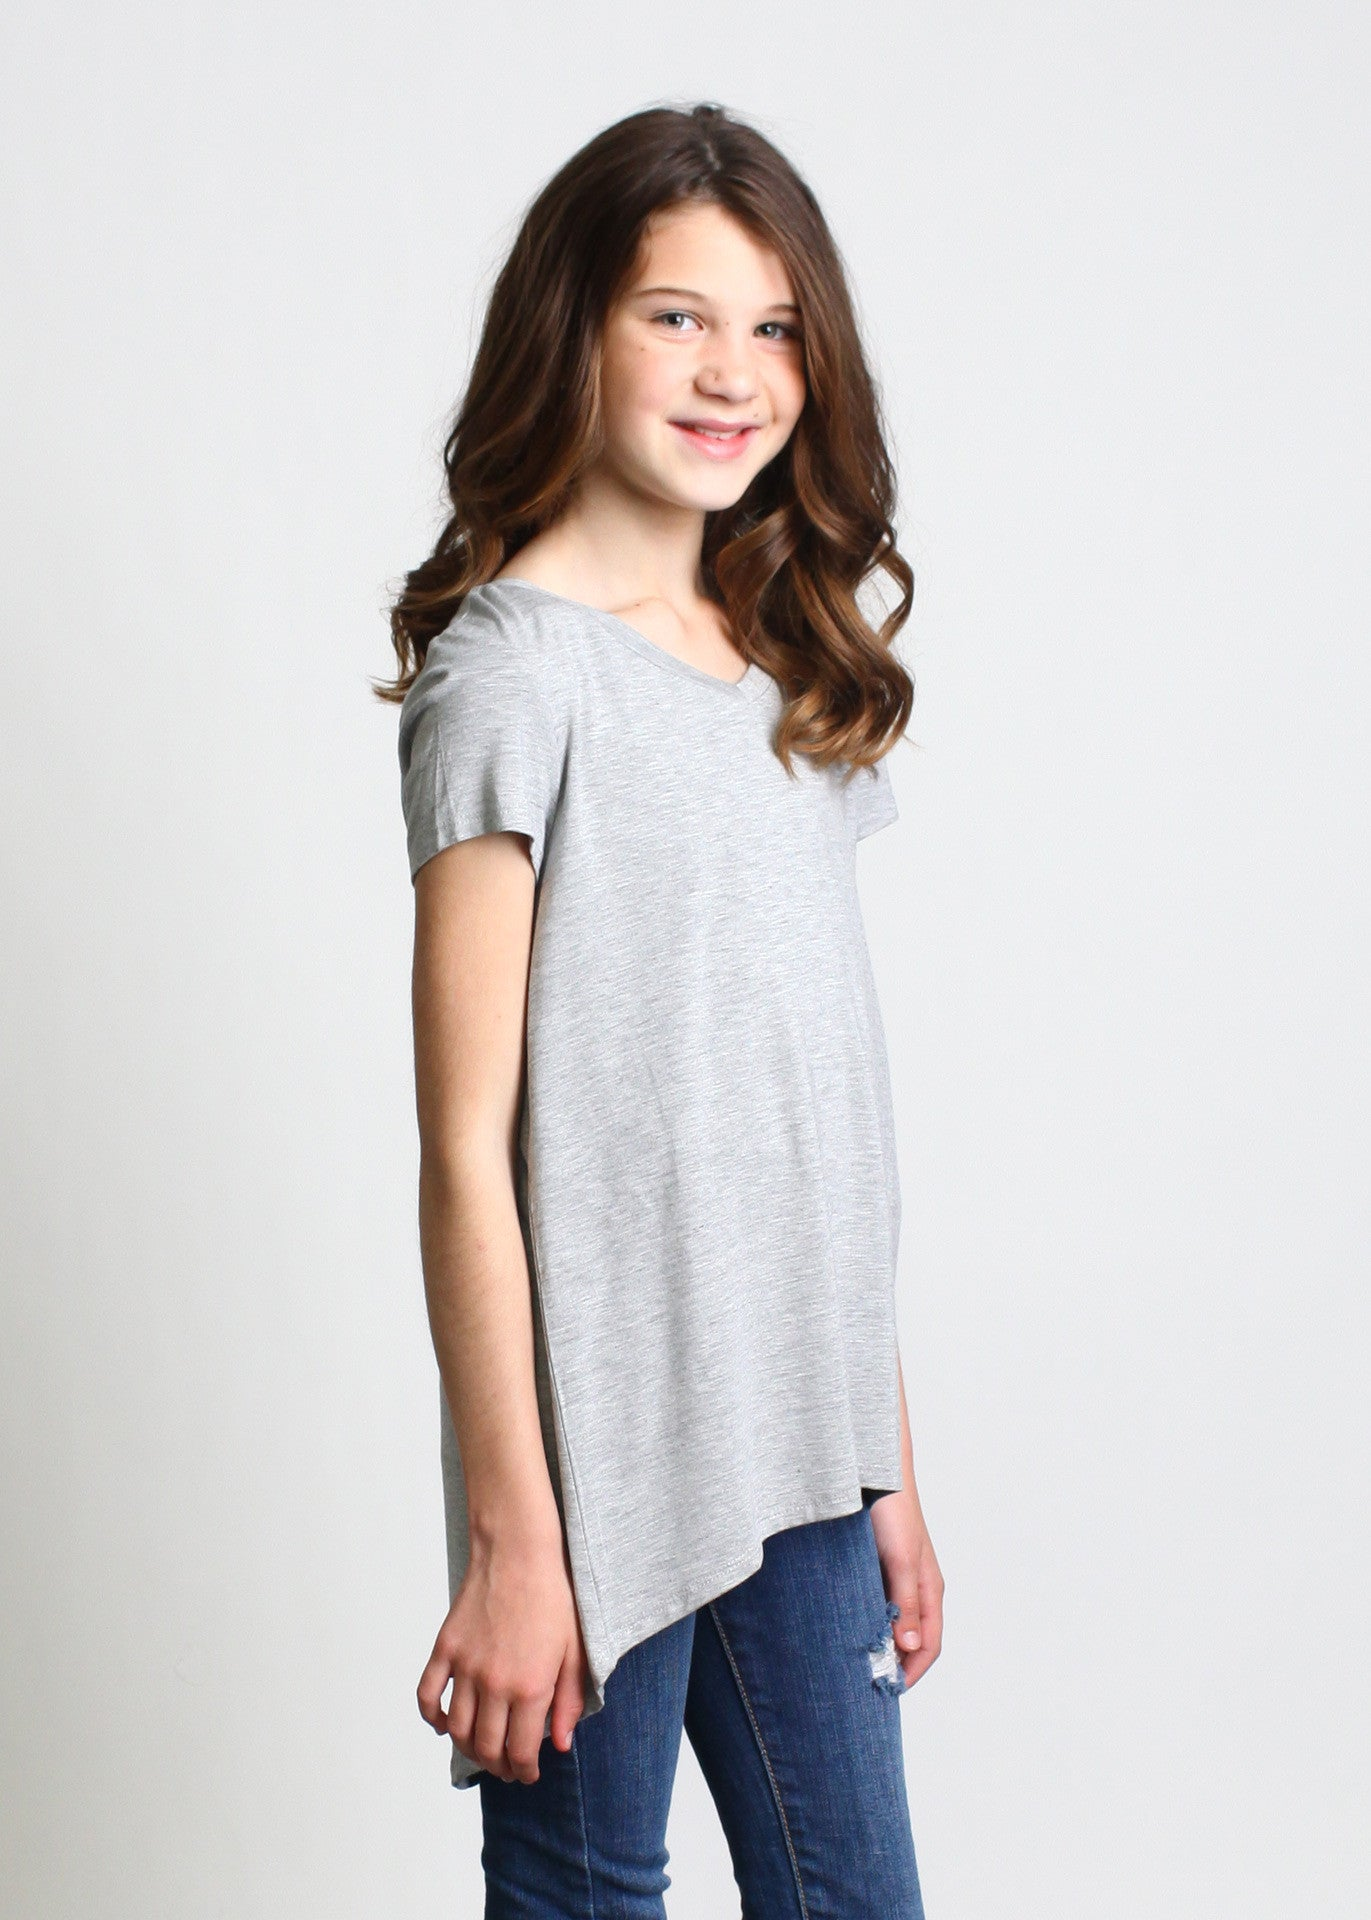 Kids High Low Top - Piko Clearance Center - 2